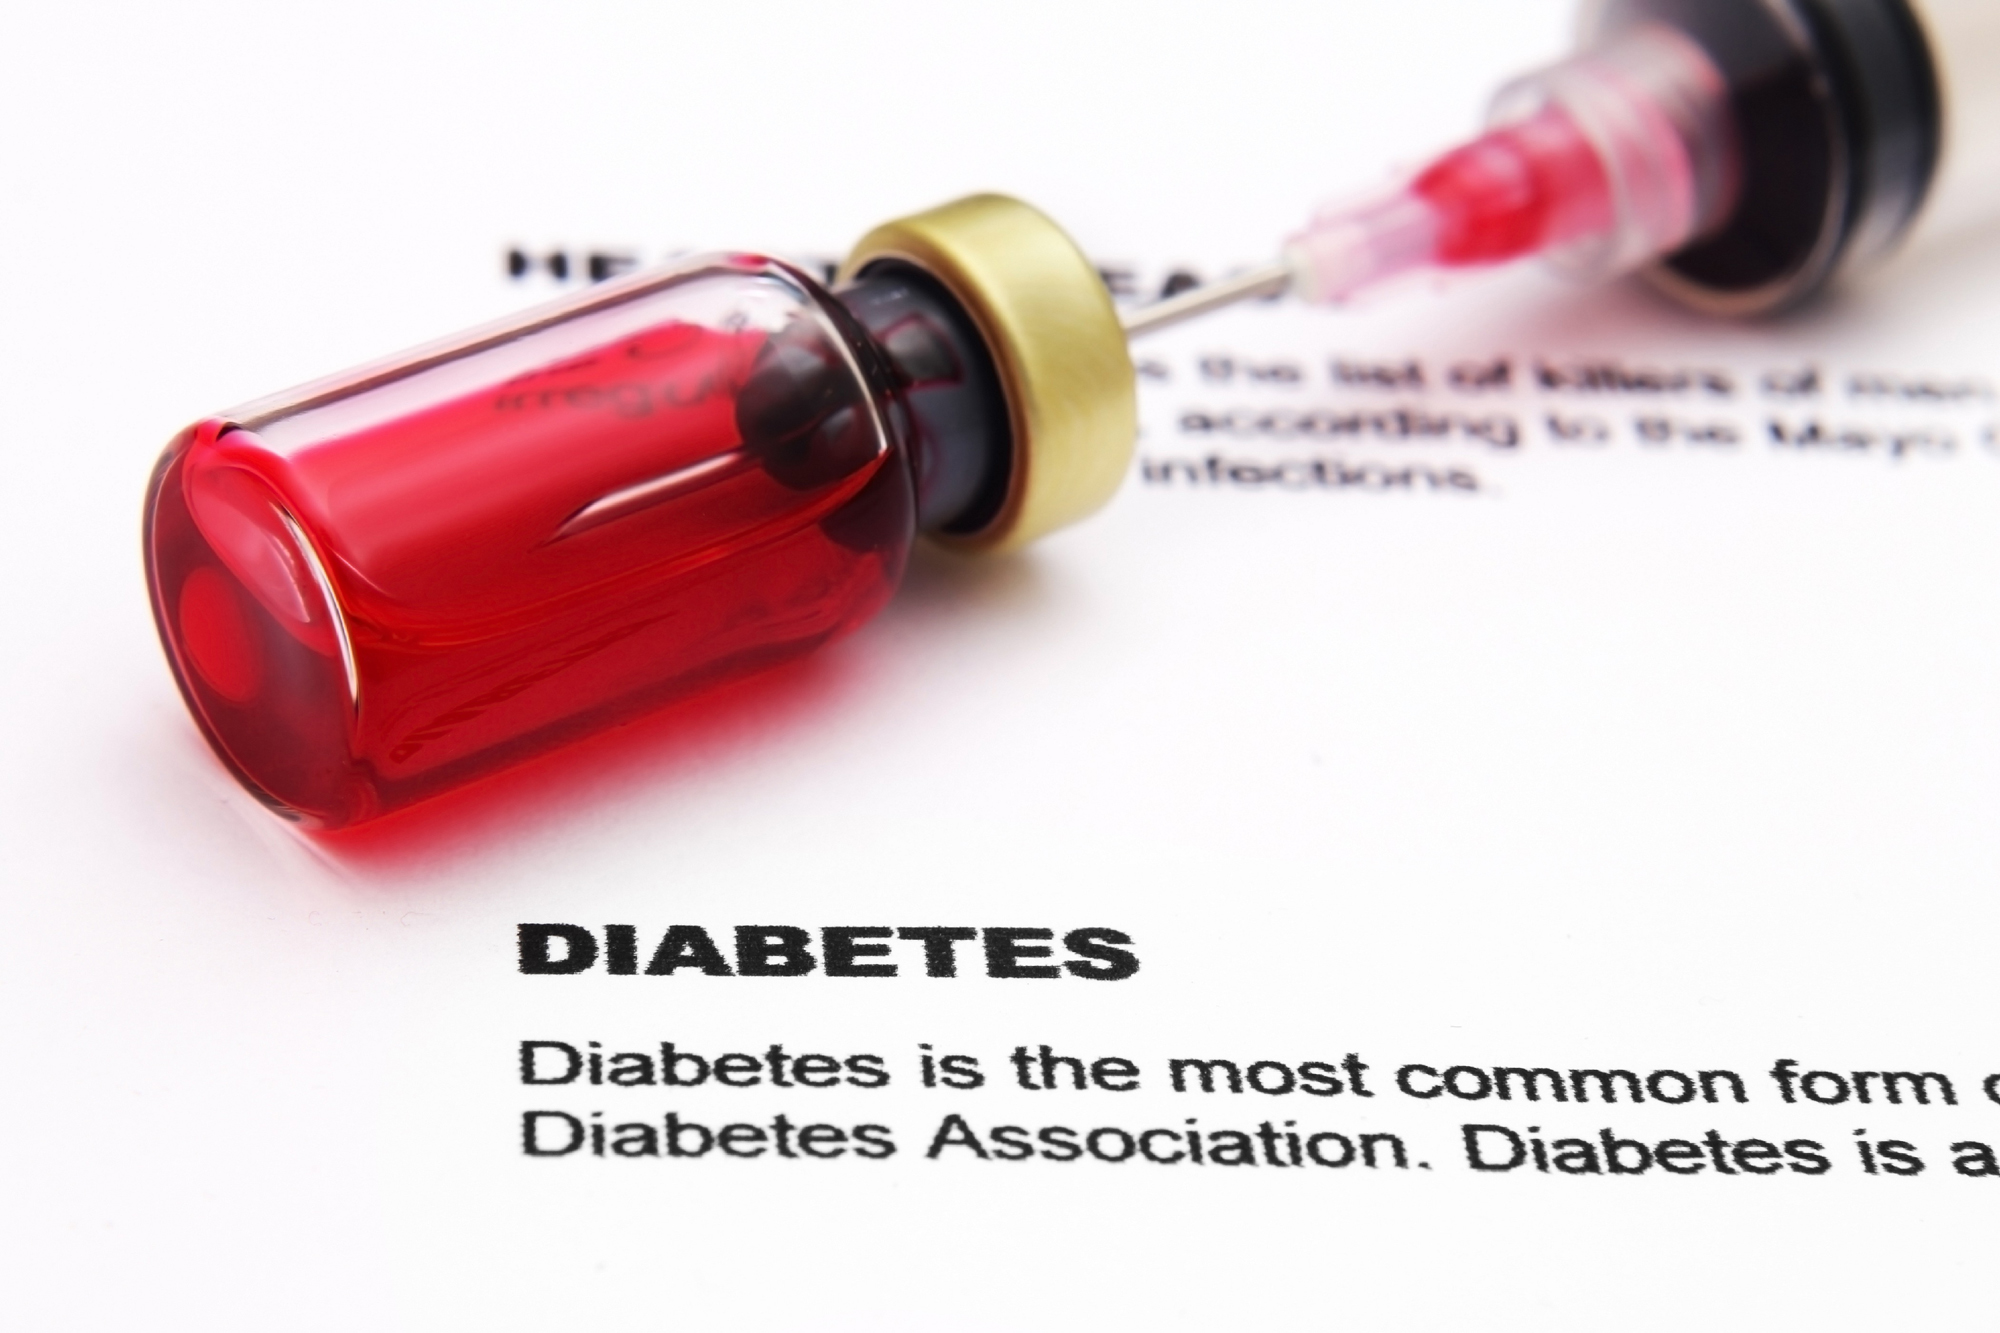 Diagnosing pre-diabetes requires a blood glucose test.